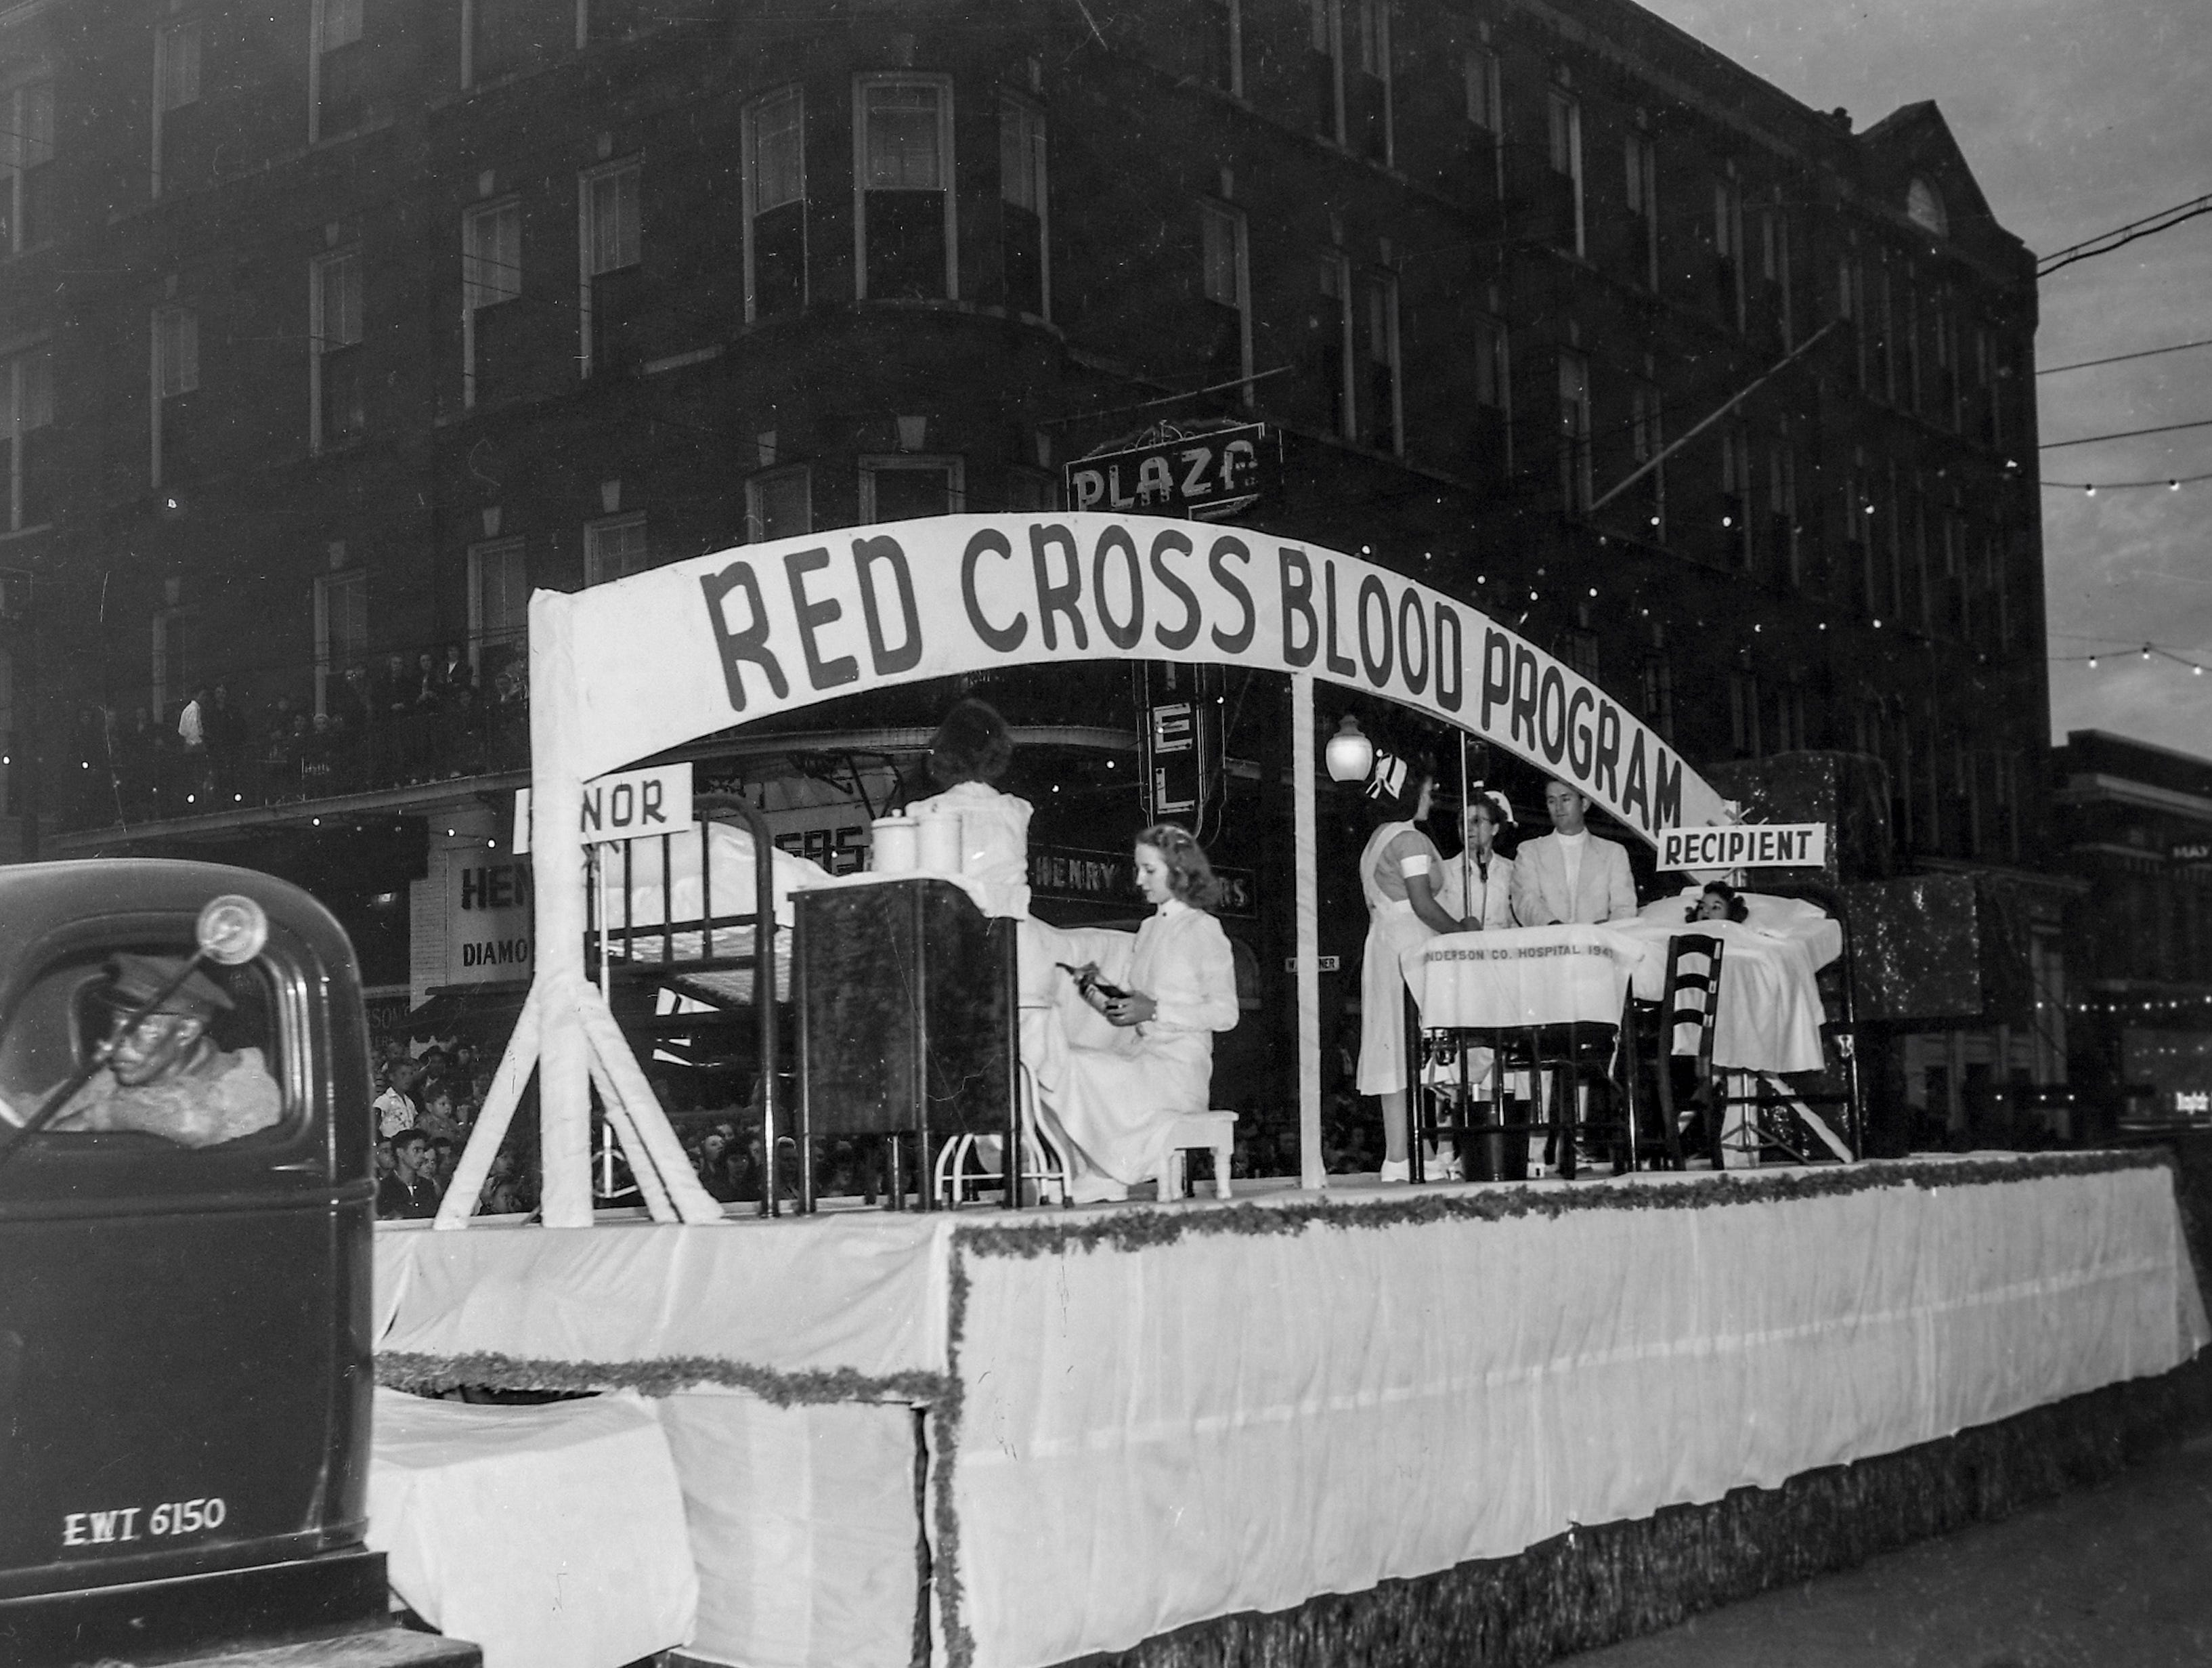 The Red Cross Blood Program float at the Anderson Christmas Parade on December 1949 in downtown Anderson.